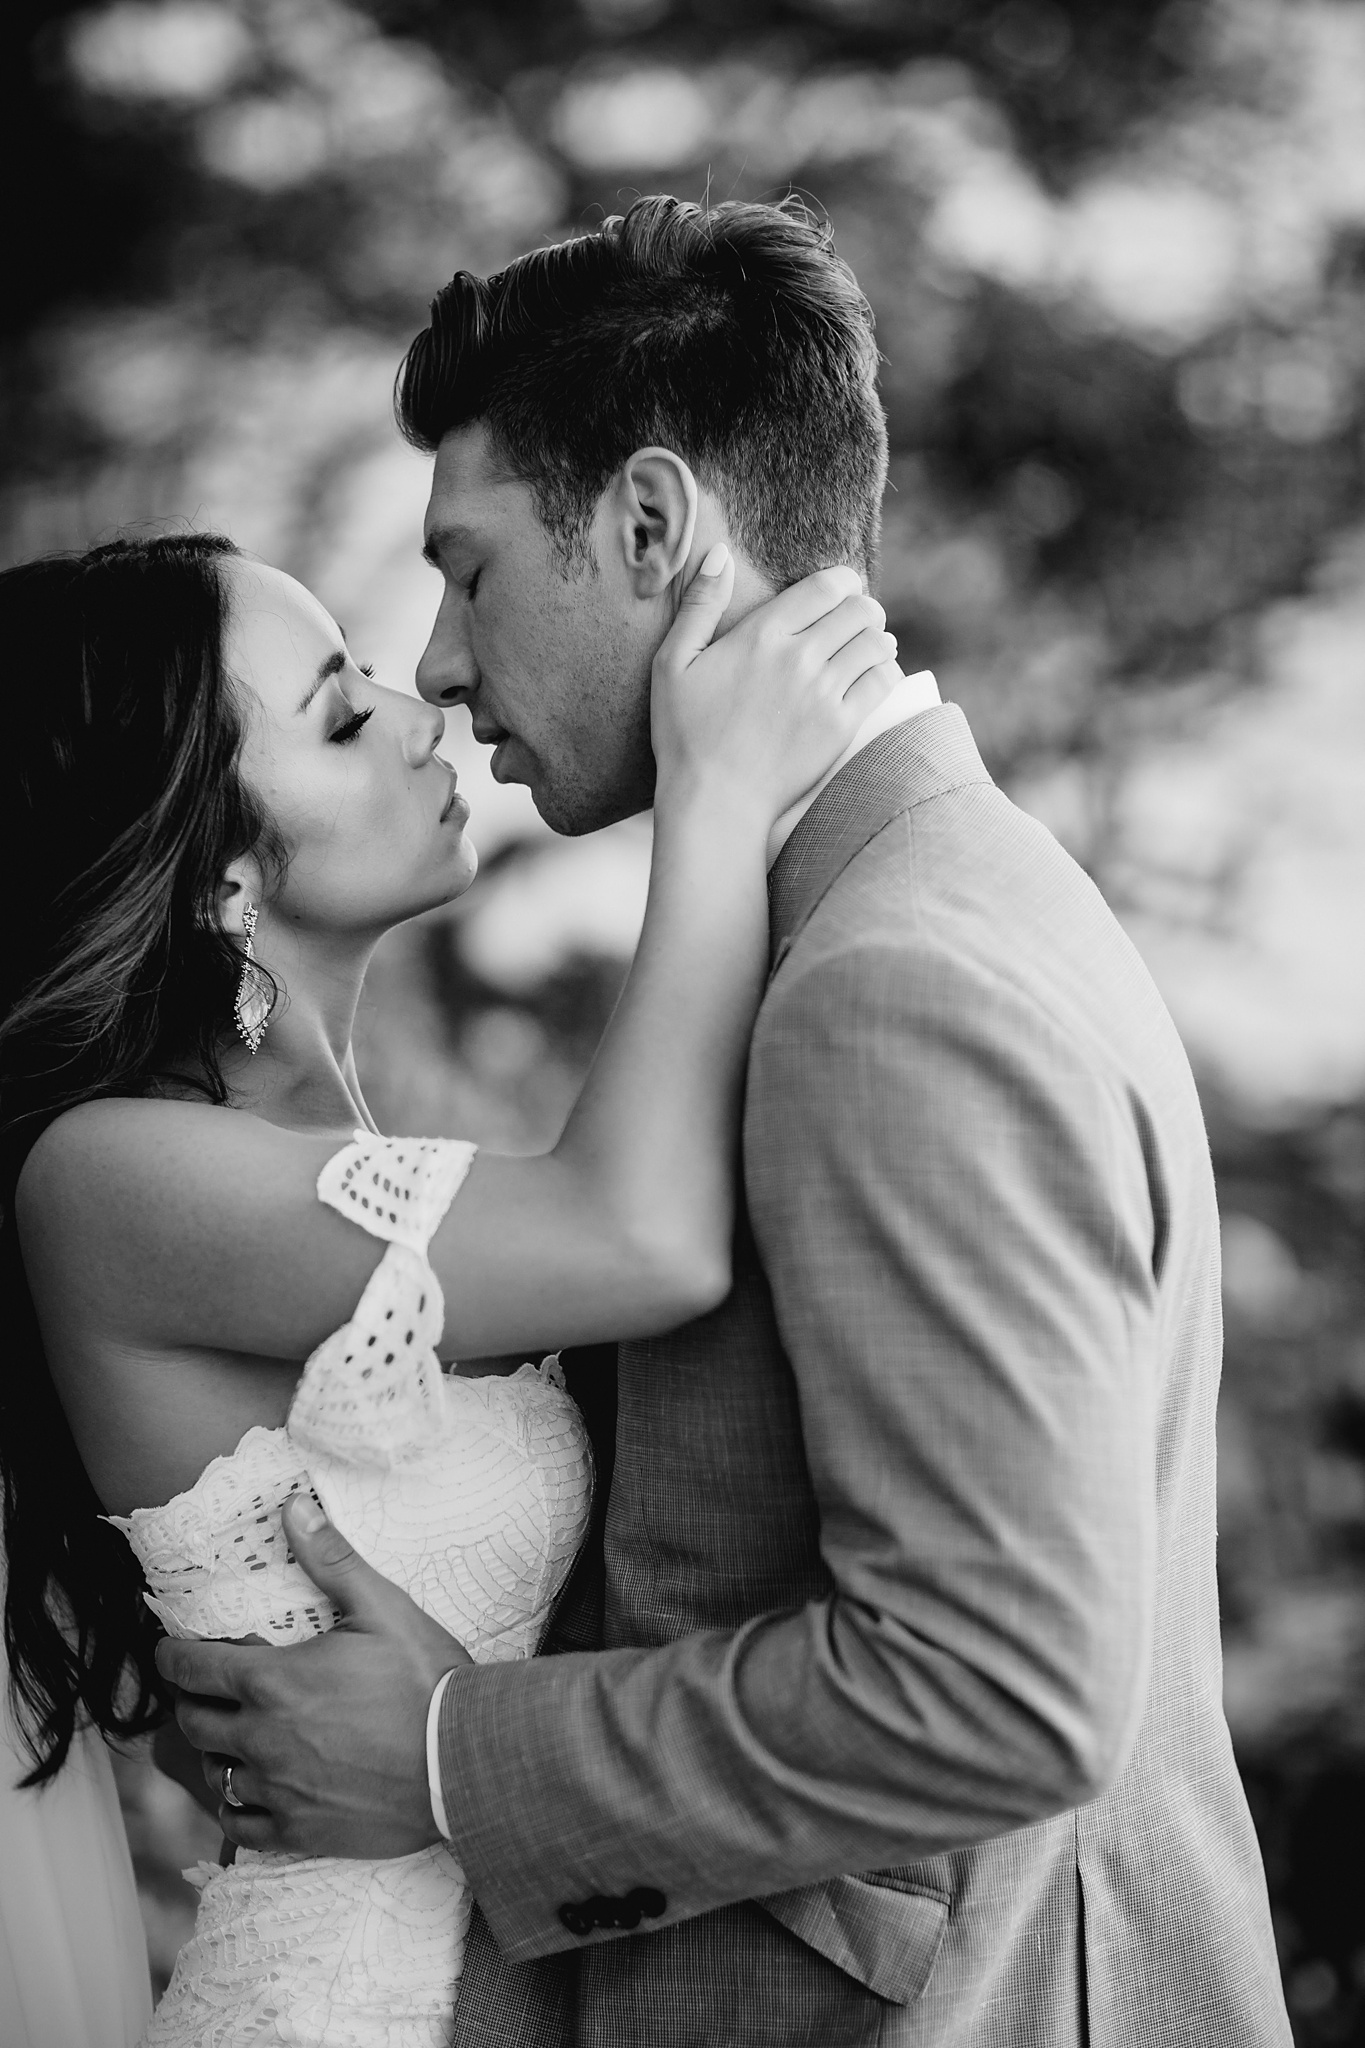 intimate moment with the bride and groom in hawaii